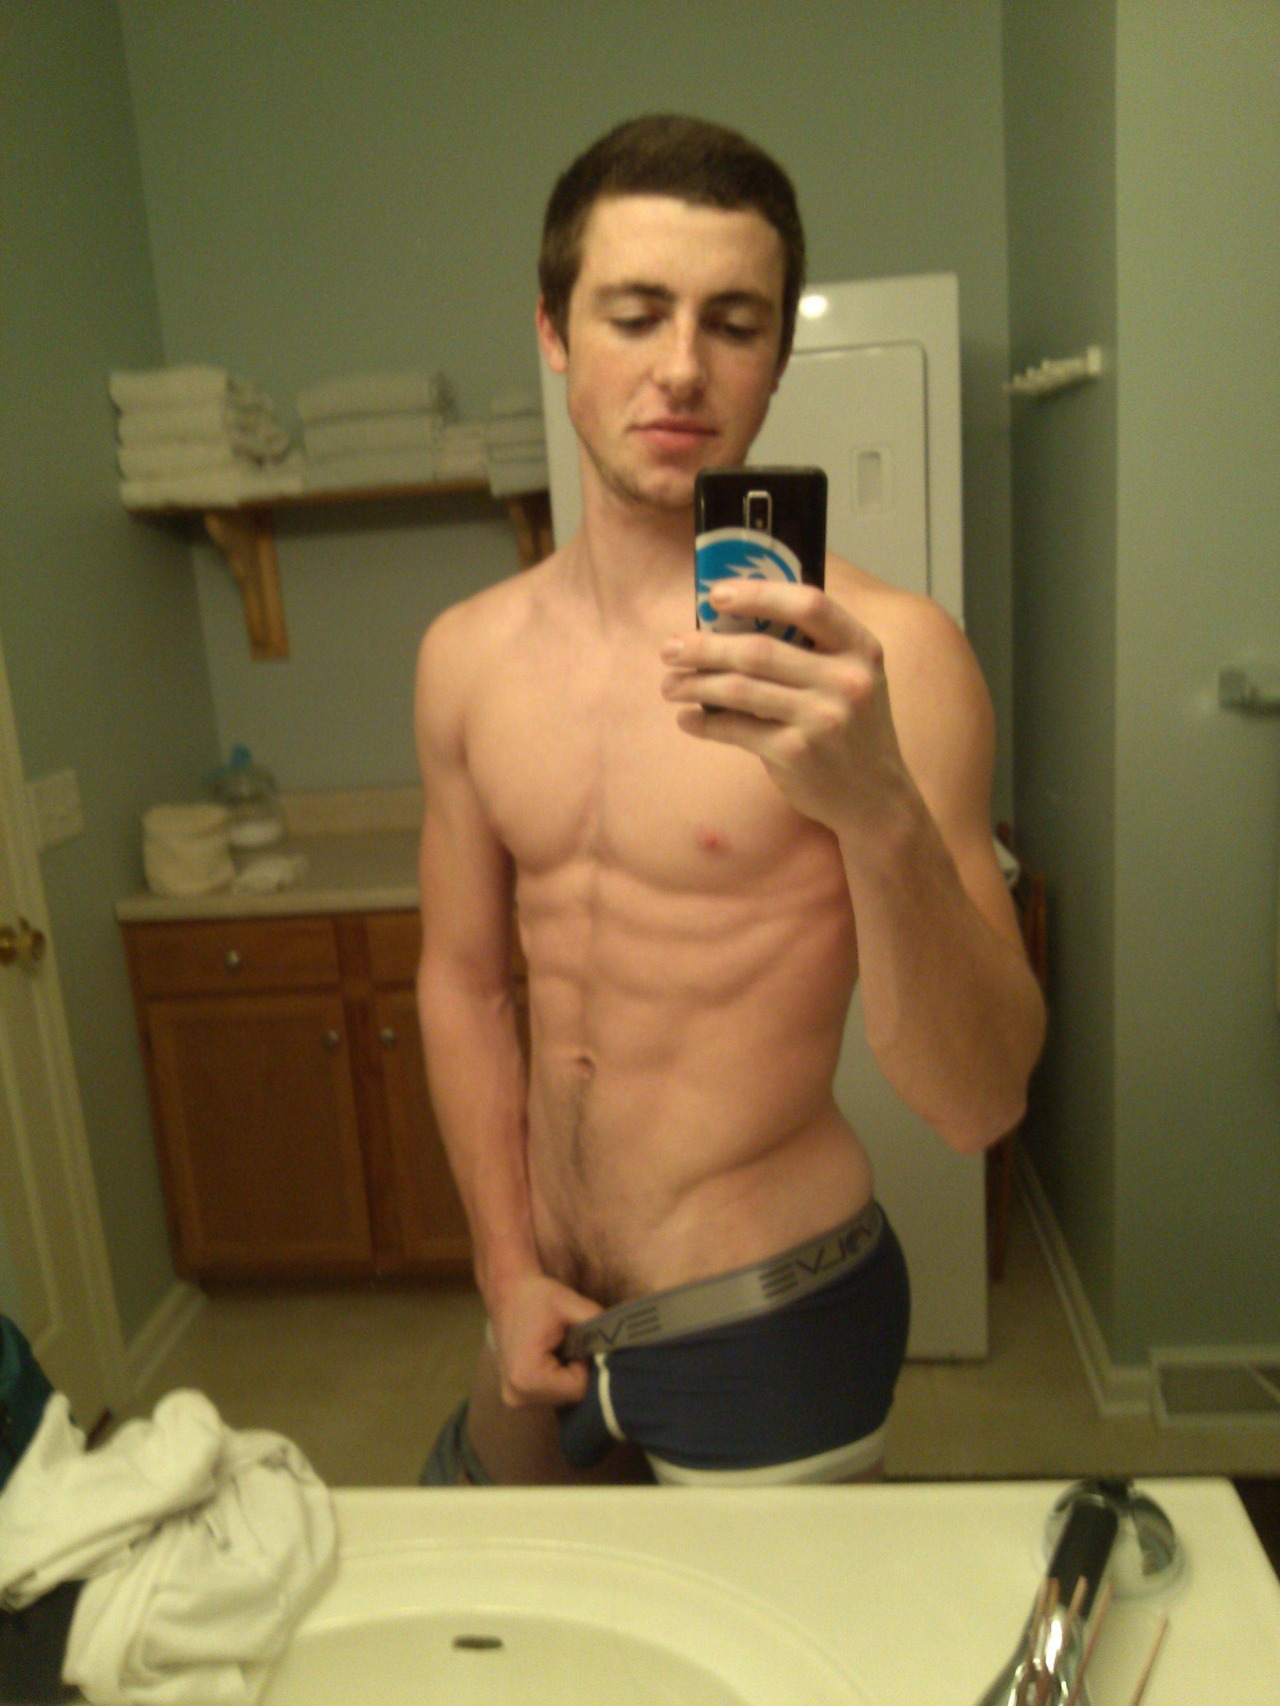 Cute Boy Getting Naked And Show Cock - Nude Amateur Guys